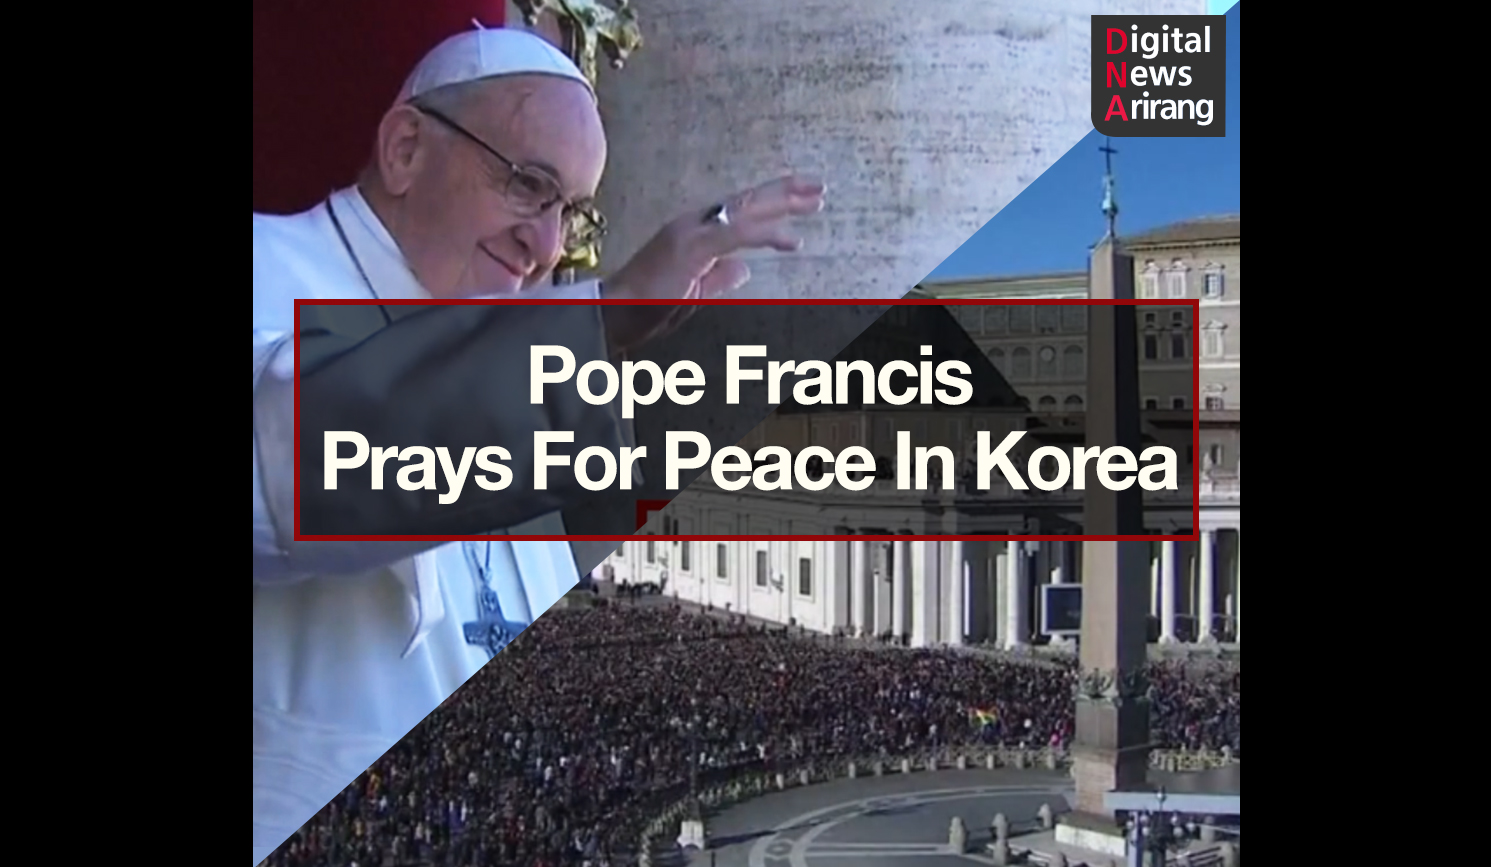 [DNA] Pope Francis Prays For Peace In Korea